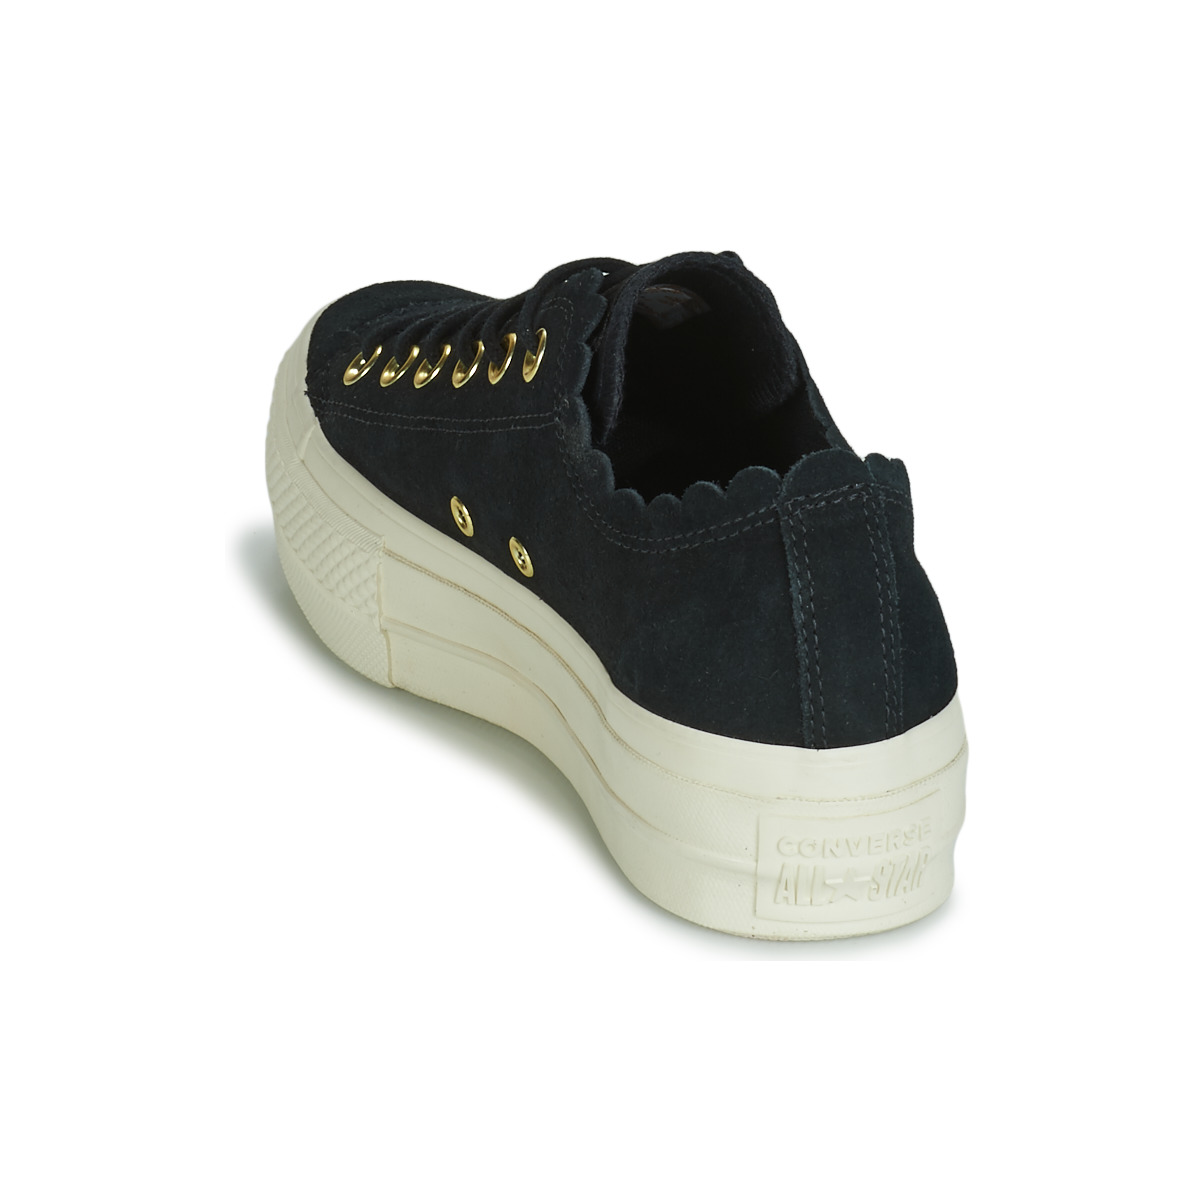 Converse CHUCK TAYLOR ALL STAR PLATFORM FRILLY THRILLS SUEDE OX Nero 12845800 Consegna Gratuita OutletScarpeOnline.it